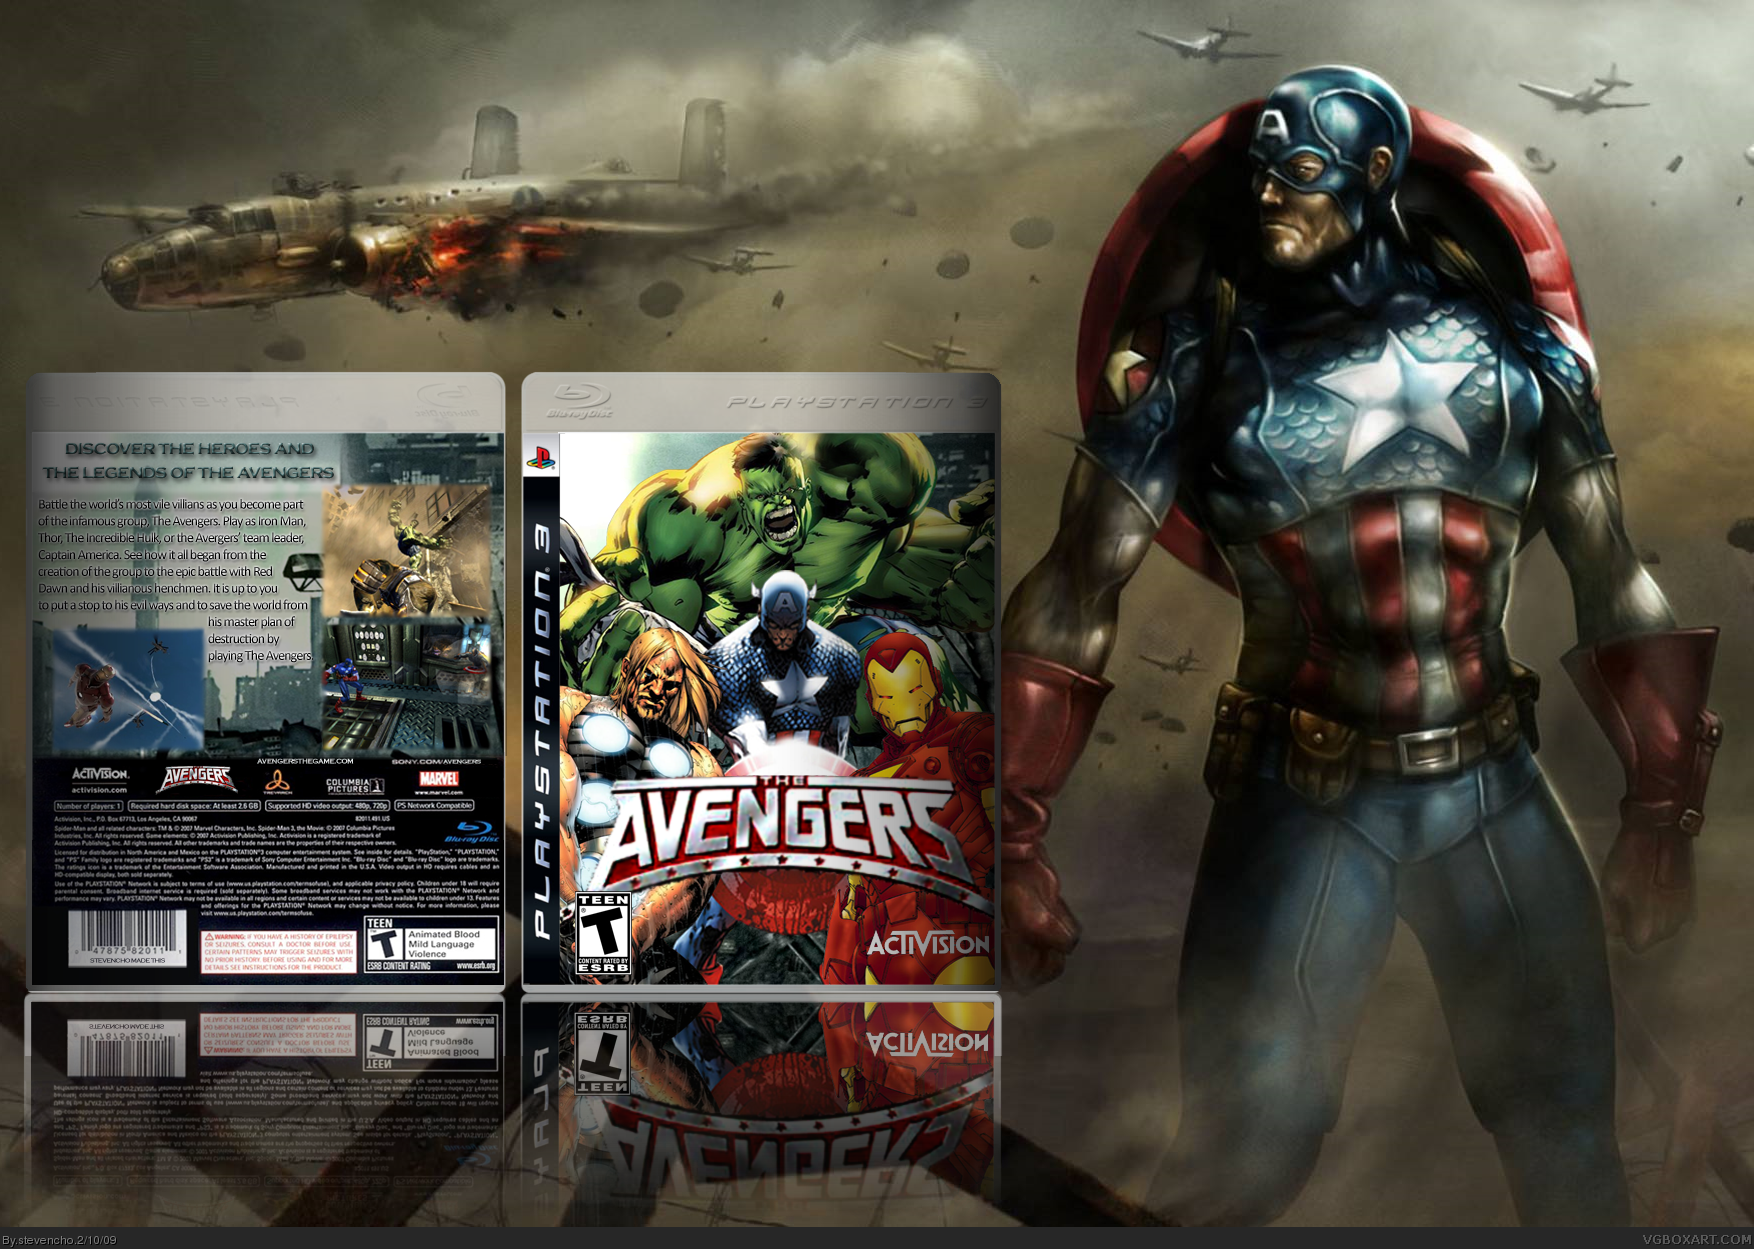 the avengers playstation 3 box art cover by stevencho